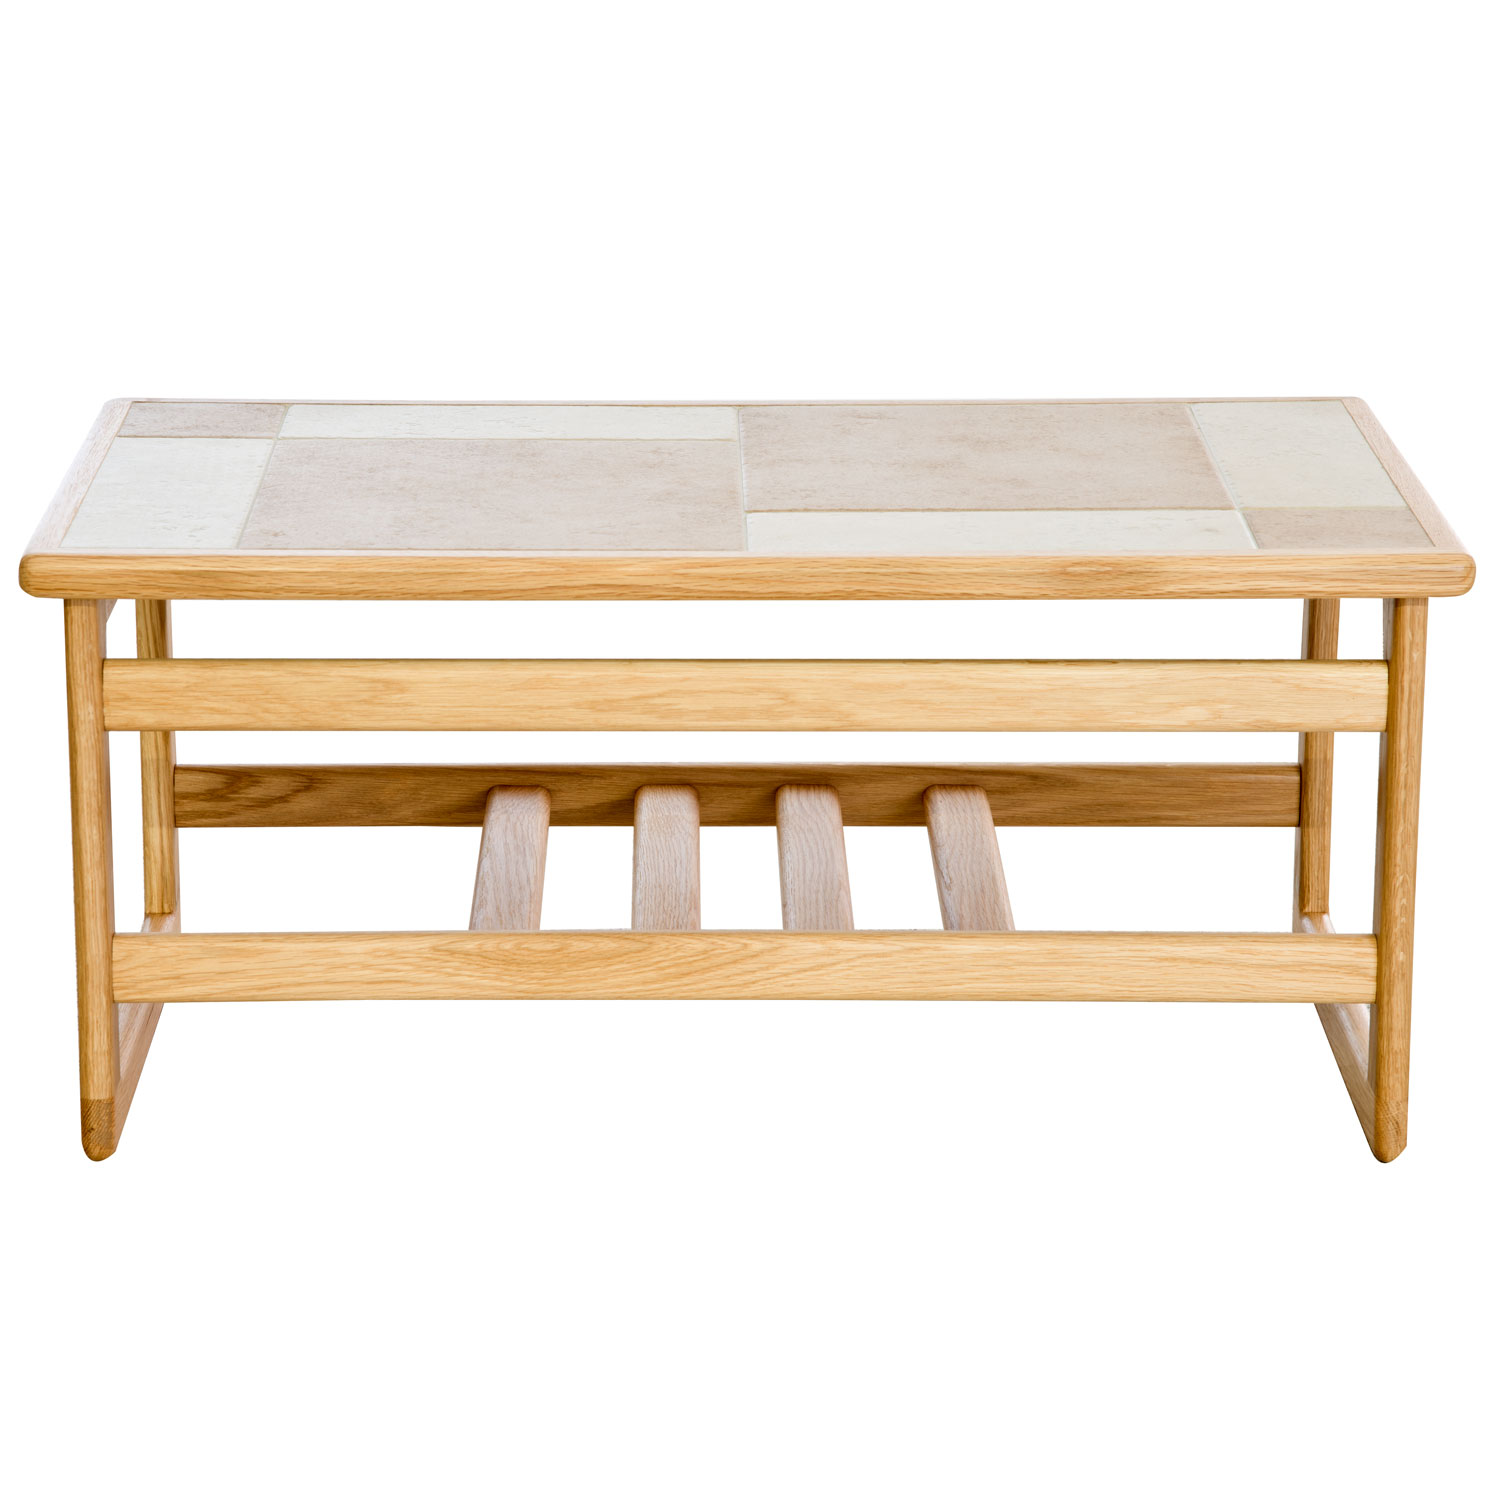 Image of Casa Amber Tile Top Small Coffee Table